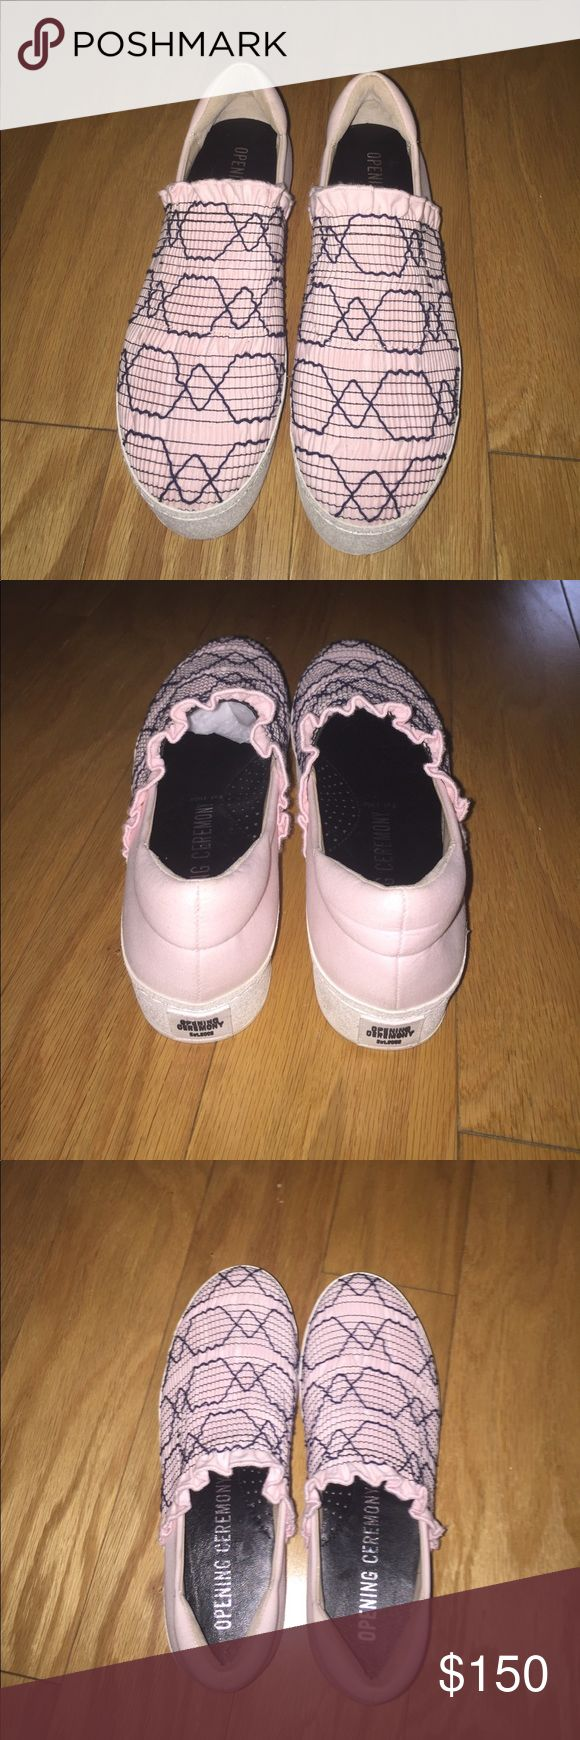 Opening Ceremony Platform Sneakers Cute, Sneakers that I only wore once! Opening Ceremony Shoes Sneakers